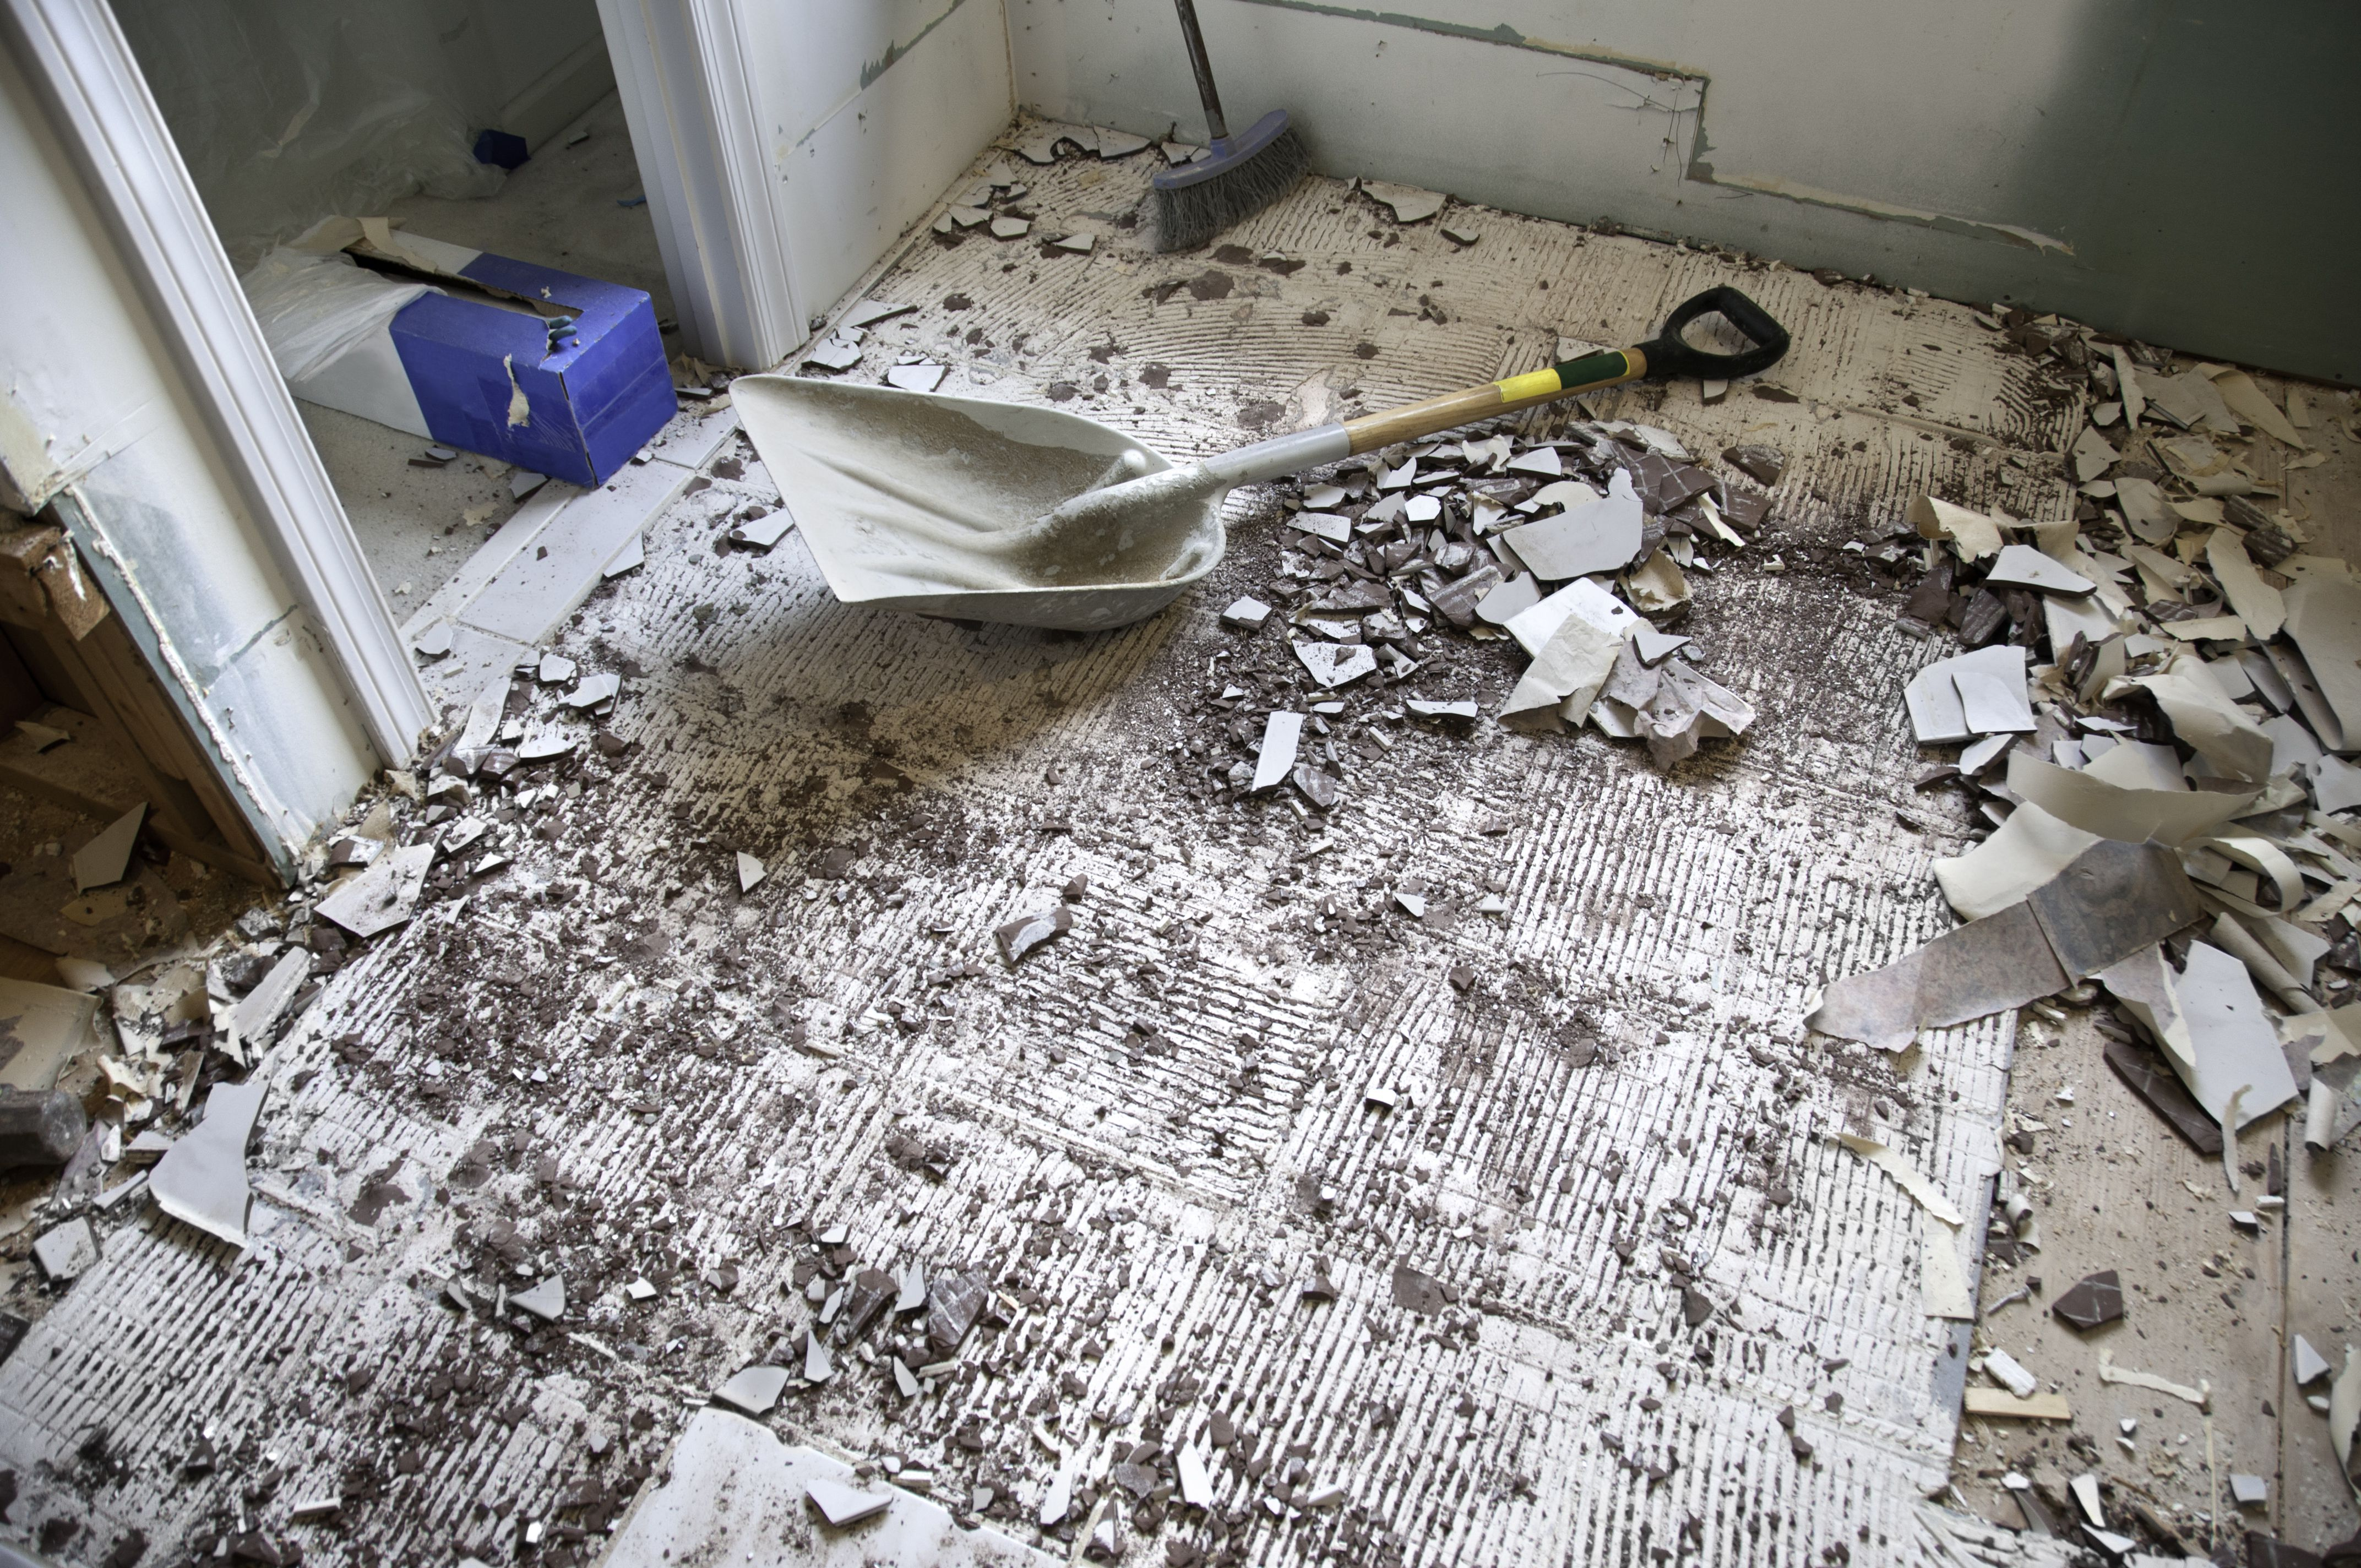 Home Improvement and Remodeling: Demolition Phase